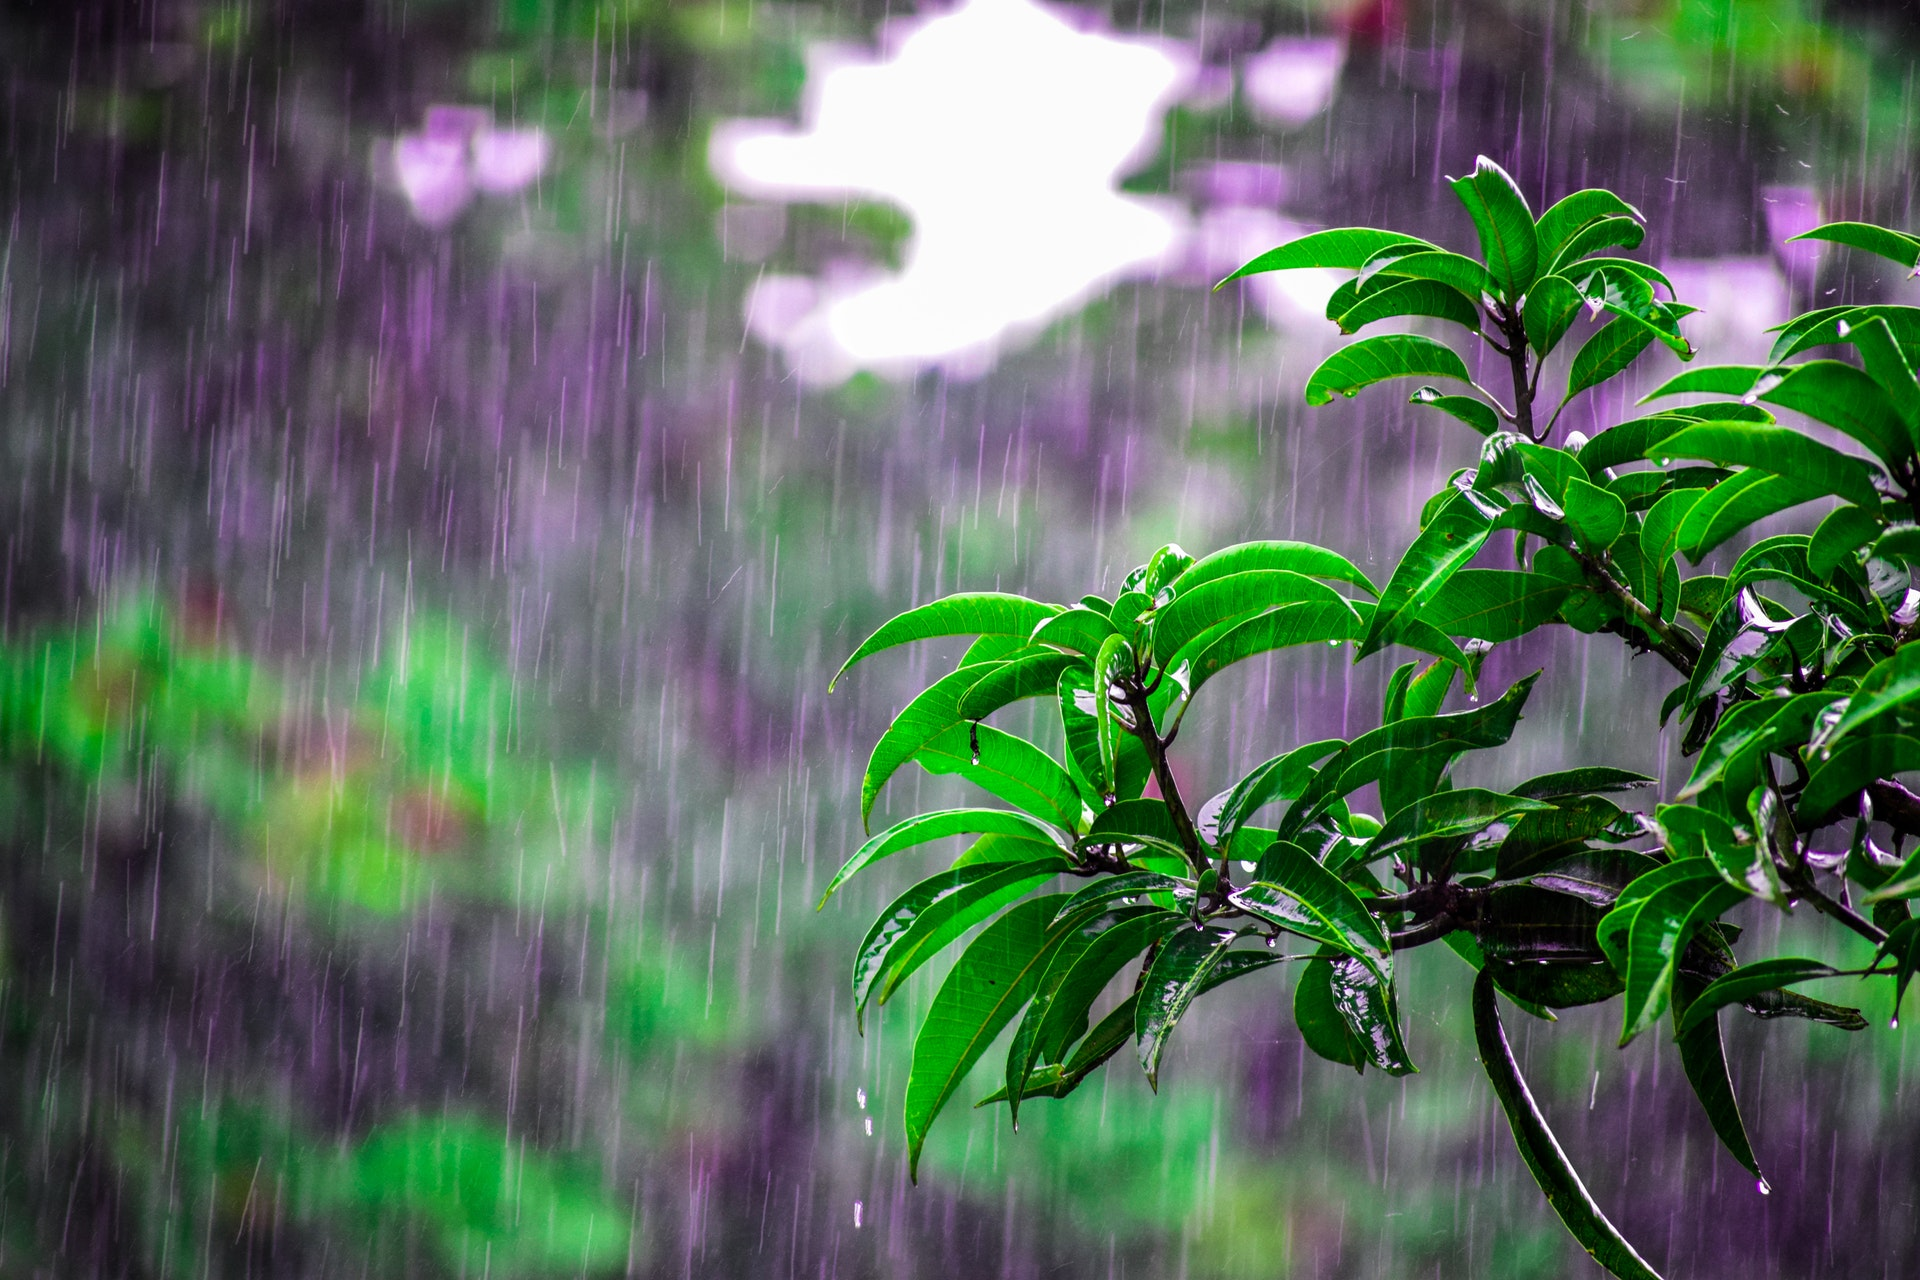 rainy-days-get-rid-of-pollen-ste-do-cli